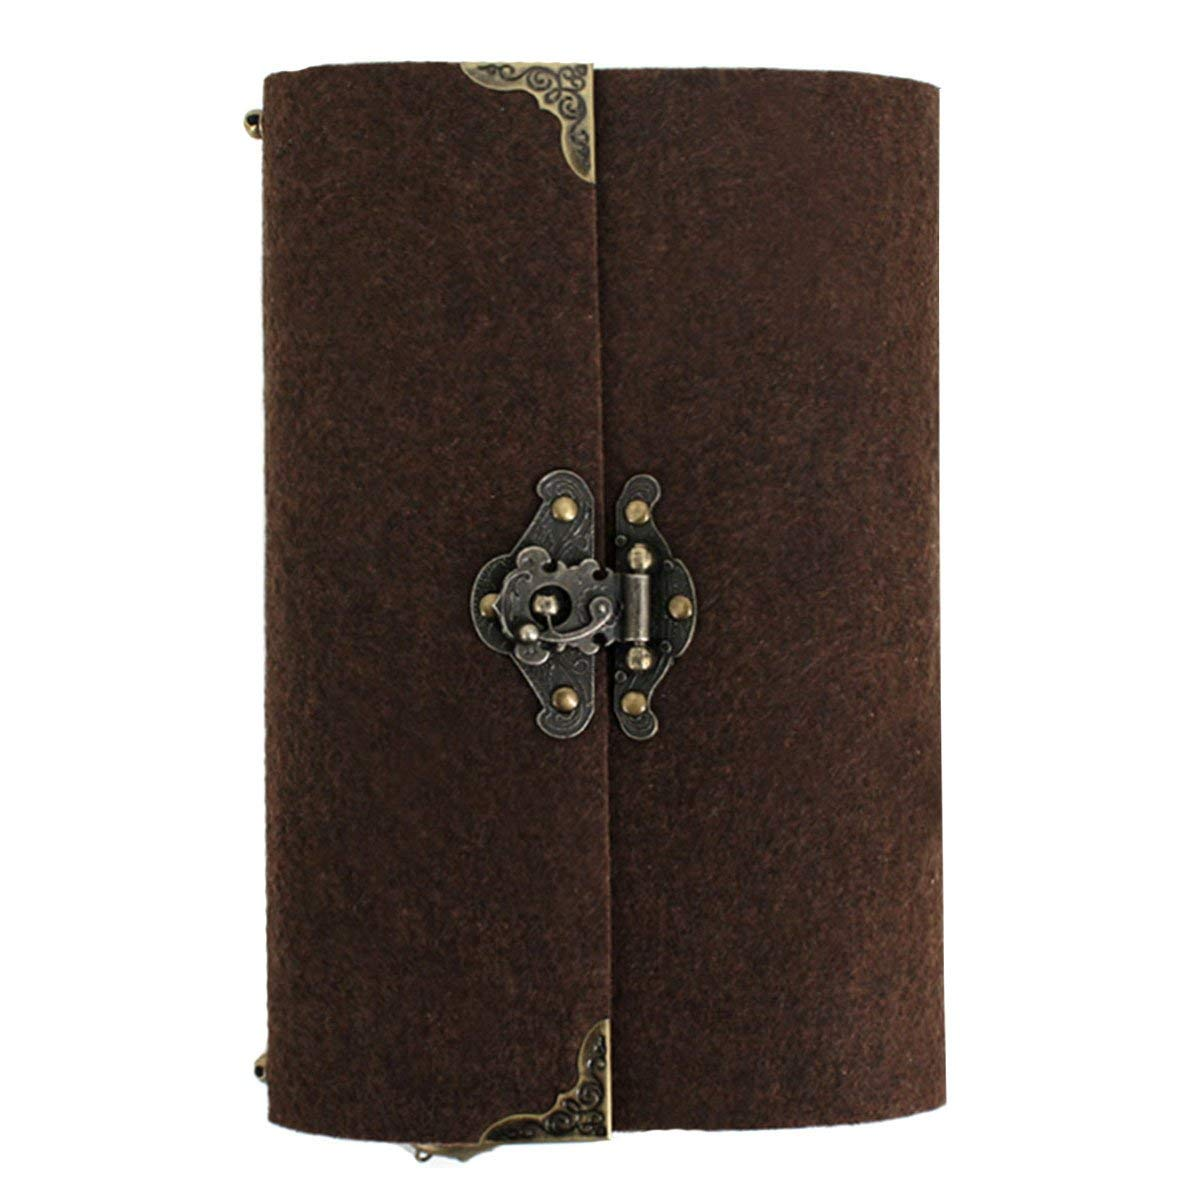 Clara Retro Slim Felt Cover Hardcover Notebook Diary Sketchbook Gifts with Vintage Bronze Lock Chocolate(lined or no line, random deliver)